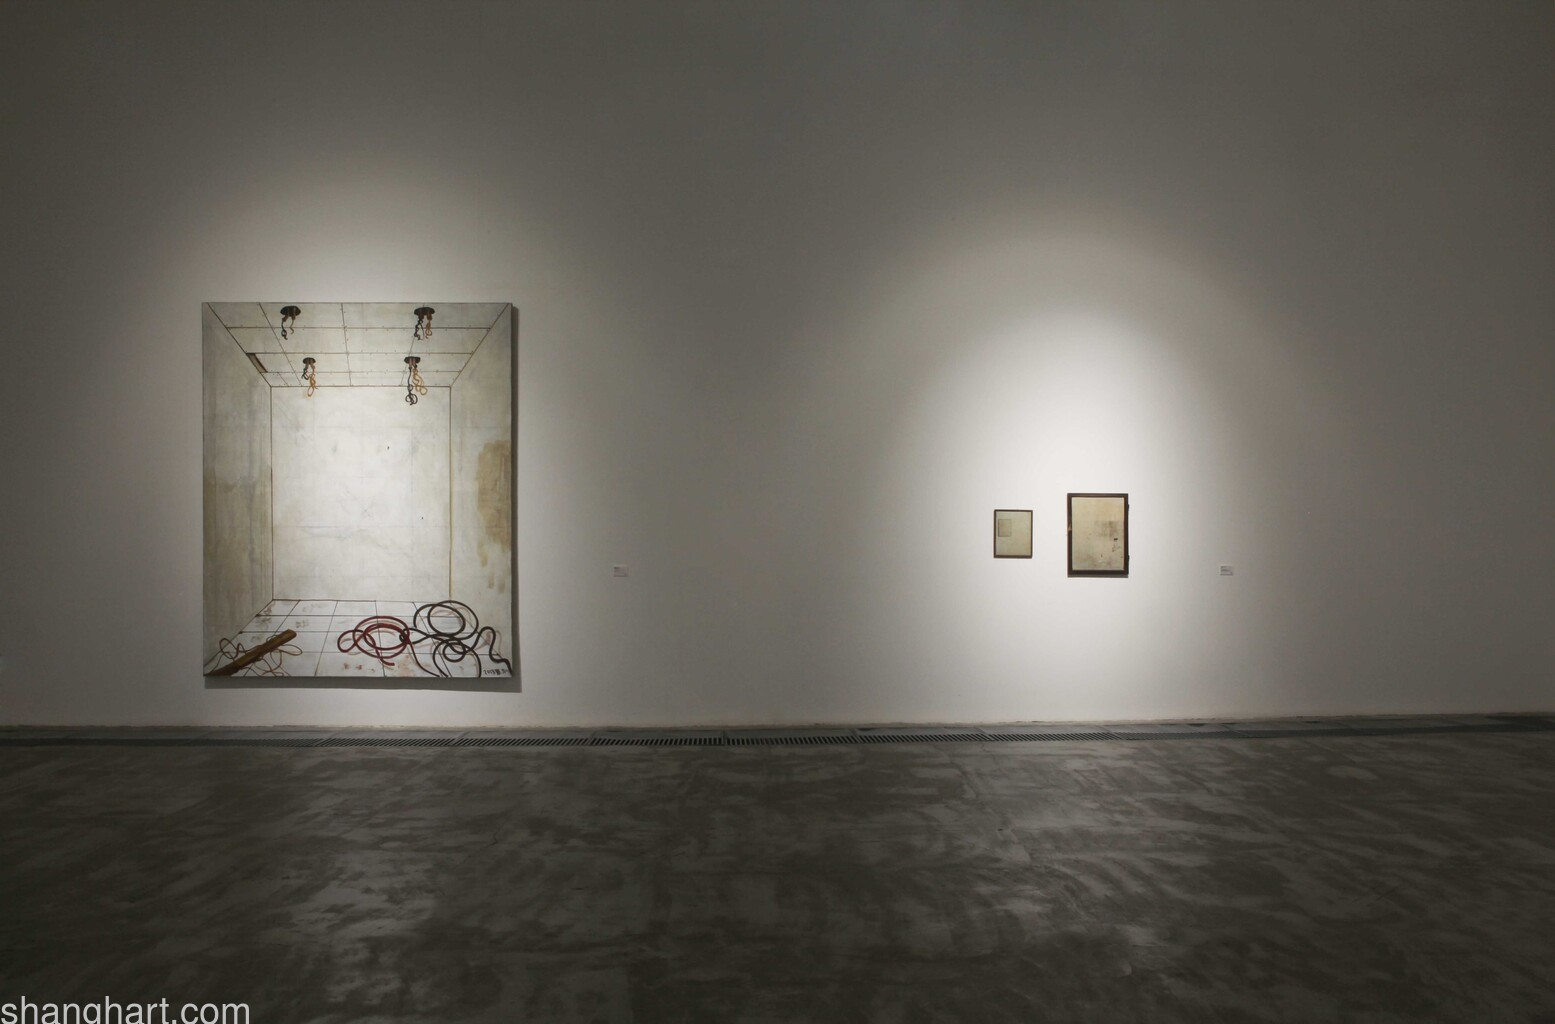 Left: Zhang Enli | Unfinished Space 1, Right: Geng Jianyi | Invisible